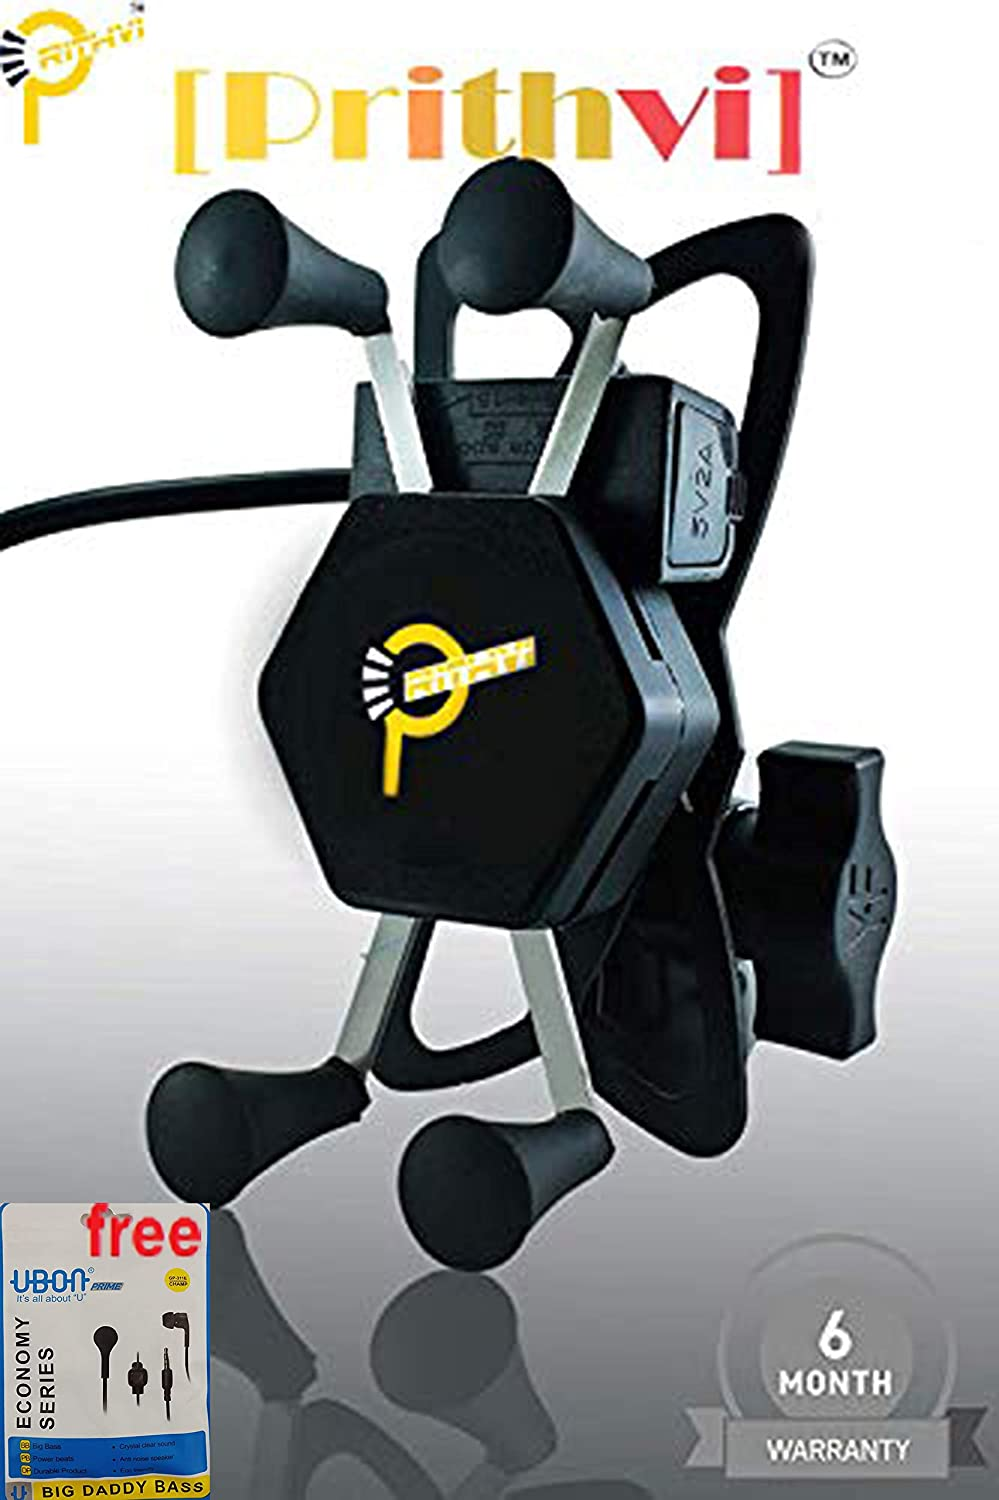 Prithvi Bike Mobile Holder/Mobile Charging,Mobile Phone Holder for Bike,  Cycle, Scooty and Motorcycle